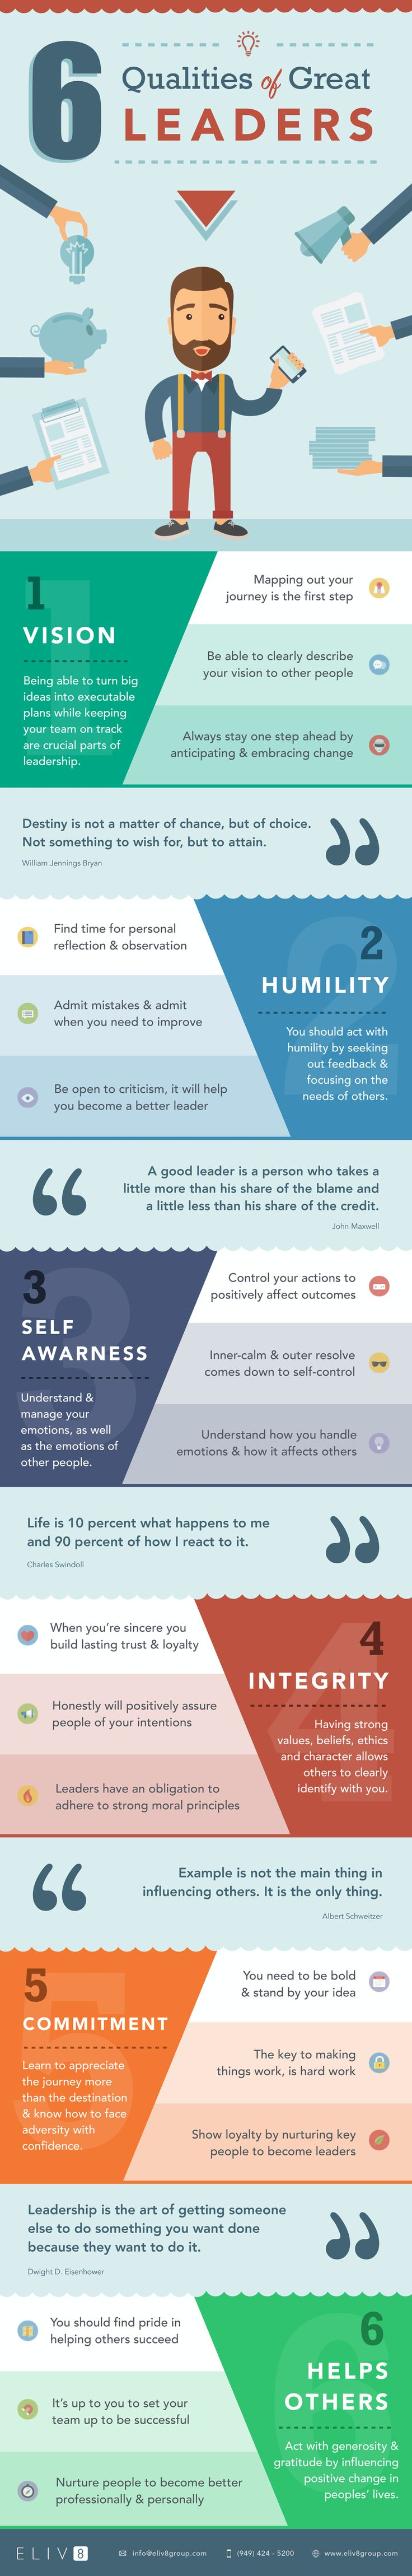 Do you have vision, humility, self-awareness, integrity, commitment and do you help others? If so, according to the infographic below, you might just be a great leader in the making!- #infographic